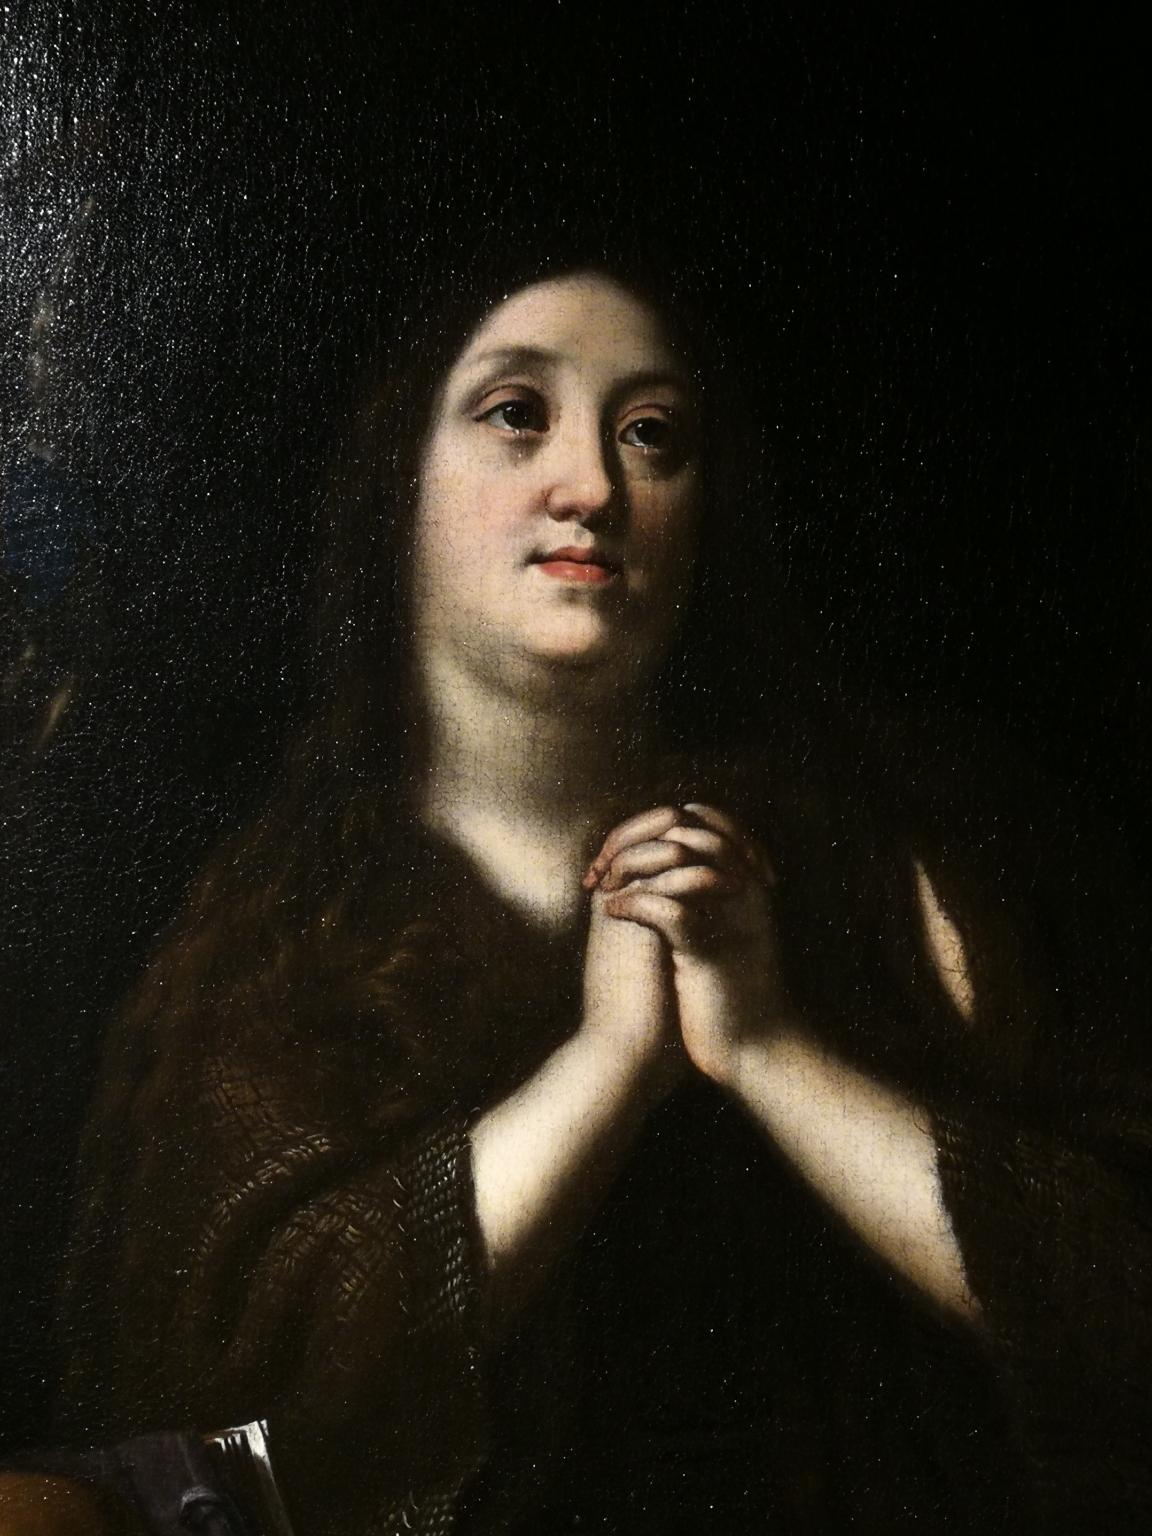 After Justus Sustermans, Portrait as Mary Magdalene, after 1620, oil on canvas